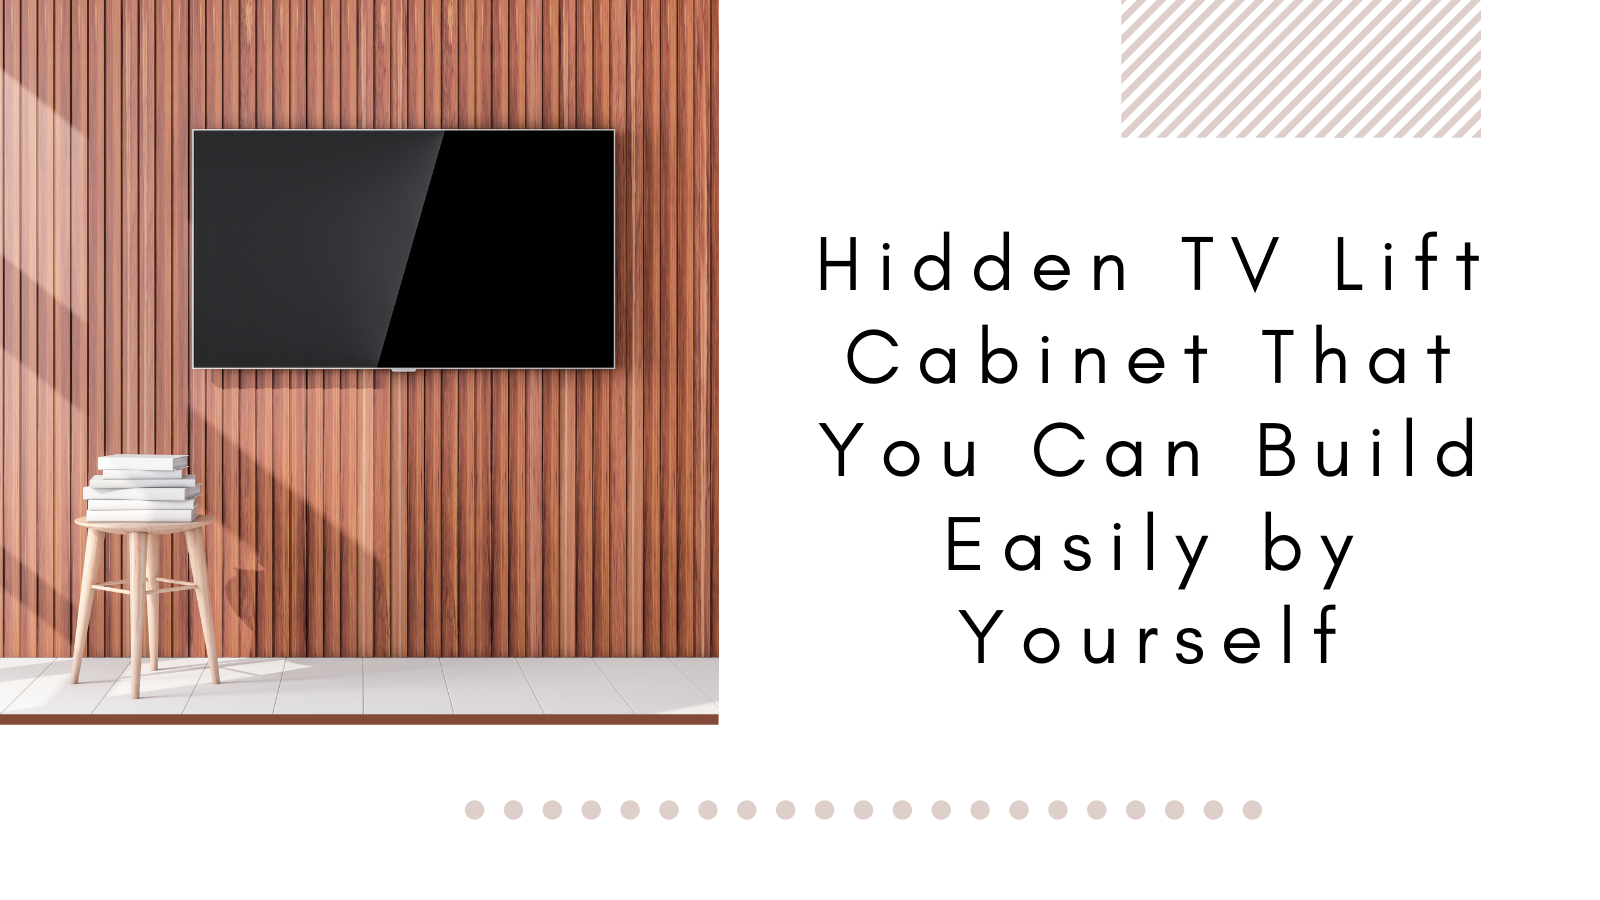 Awesome Hidden TV Lift Cabinet That You Can Build Easily by Yourself, Here Is How